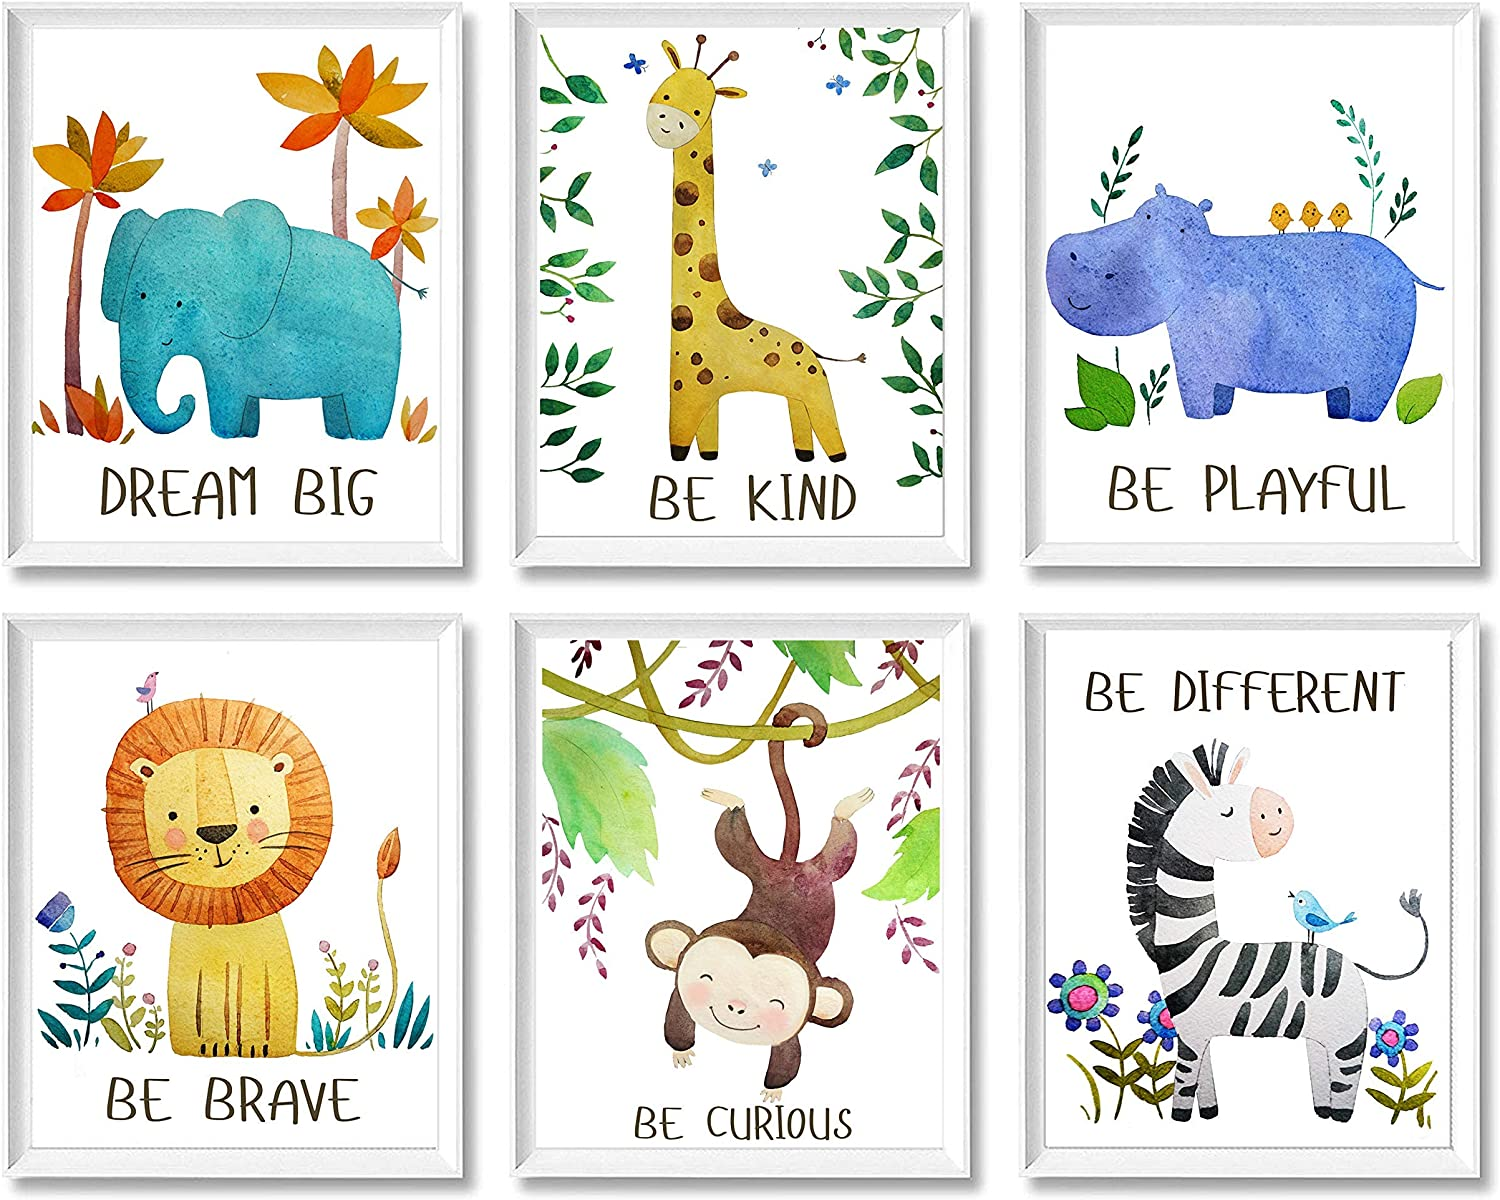 Baby Nursery Decor Jungle Safari Animal Unframed Wall Art -Set of 6 Posters 8x10 - Lion, Giraffe, Elephant, Monkey, Zebra, Hippo